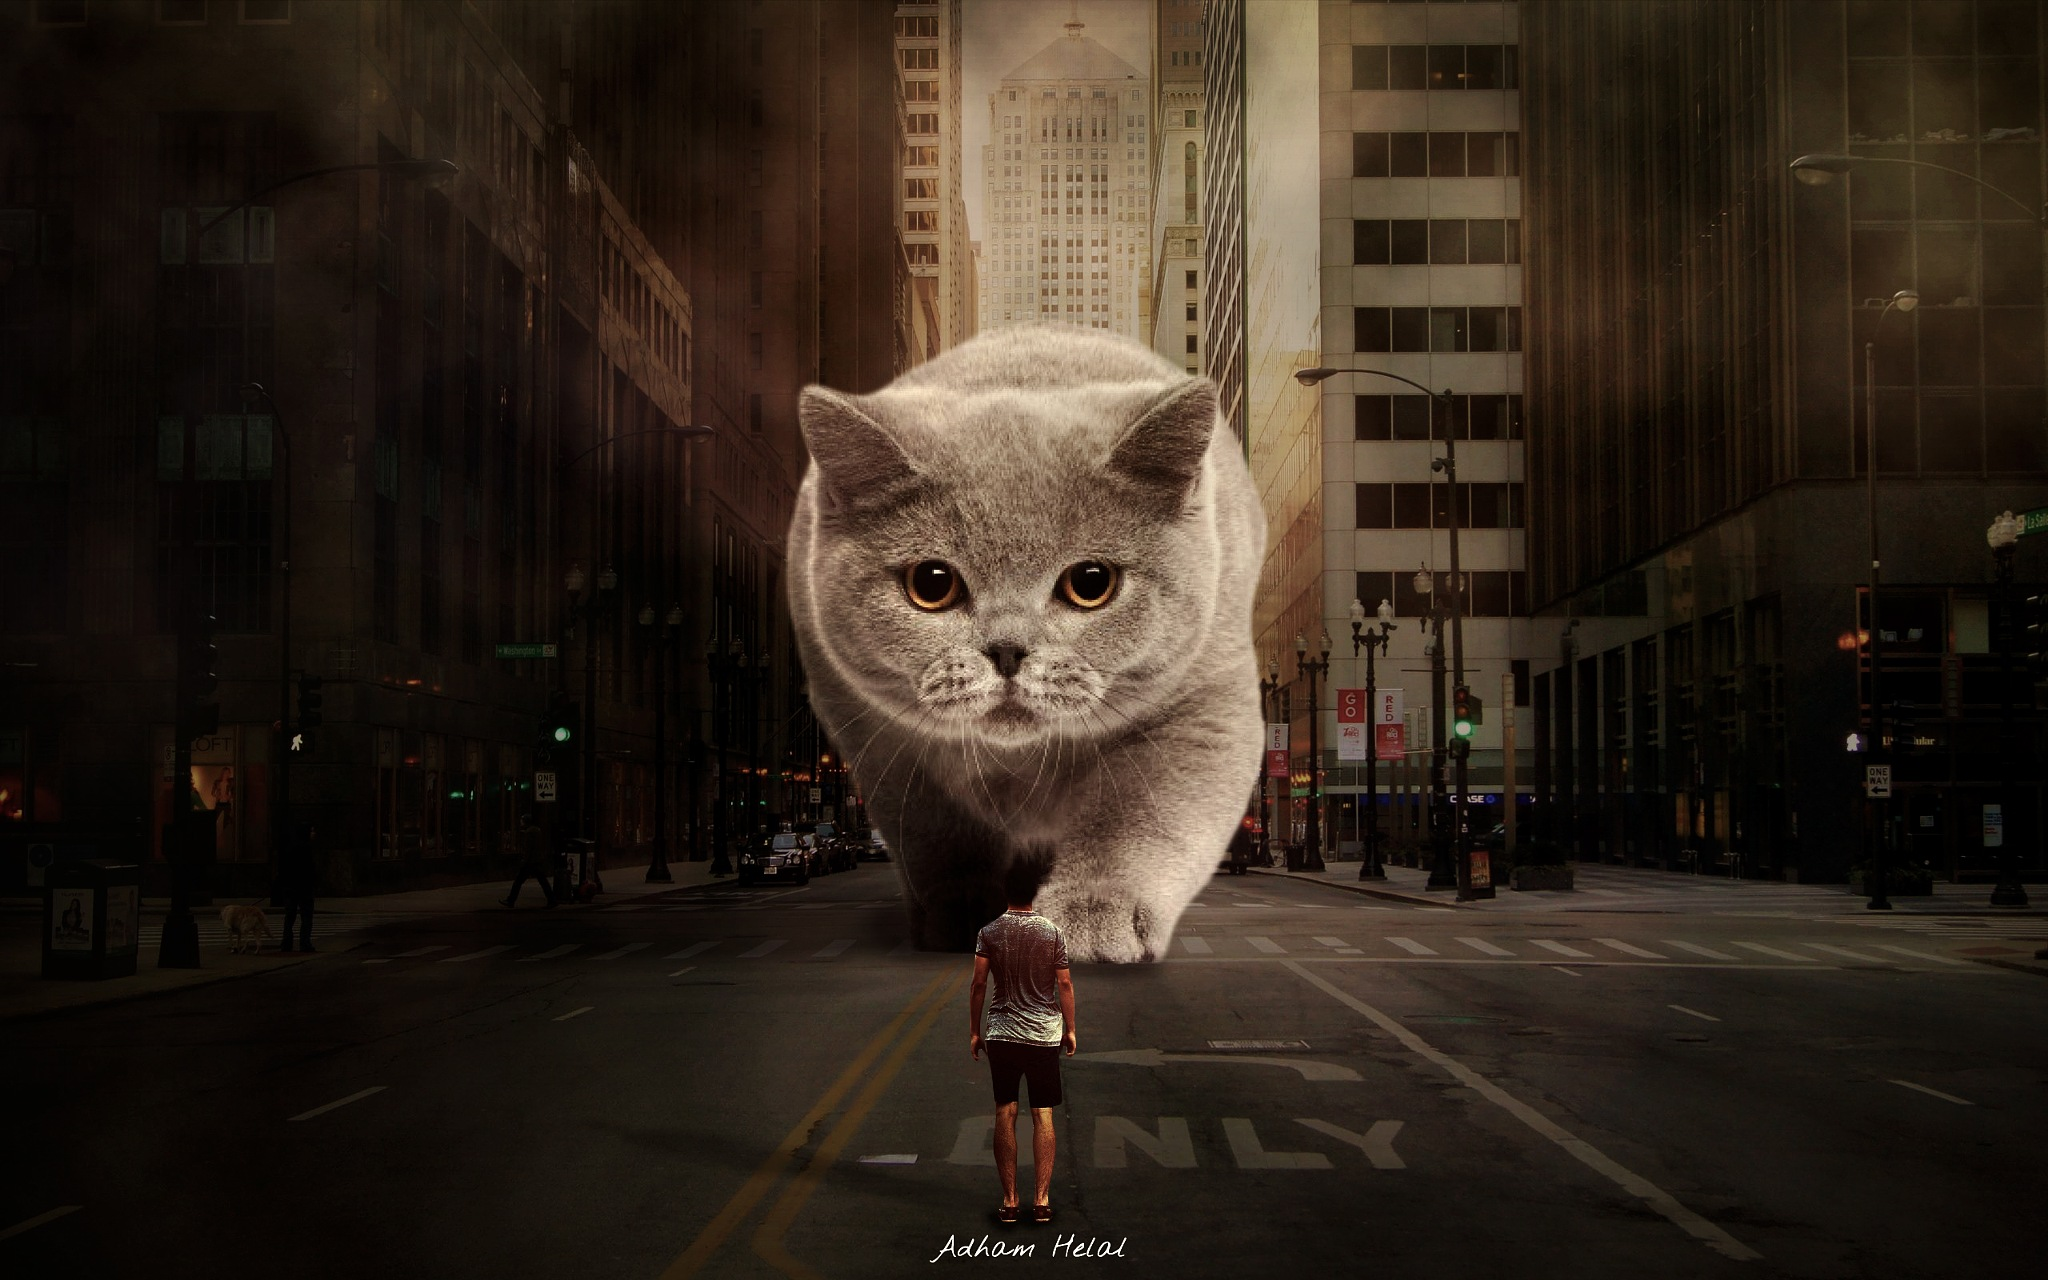 awesome cat by Adham Helal